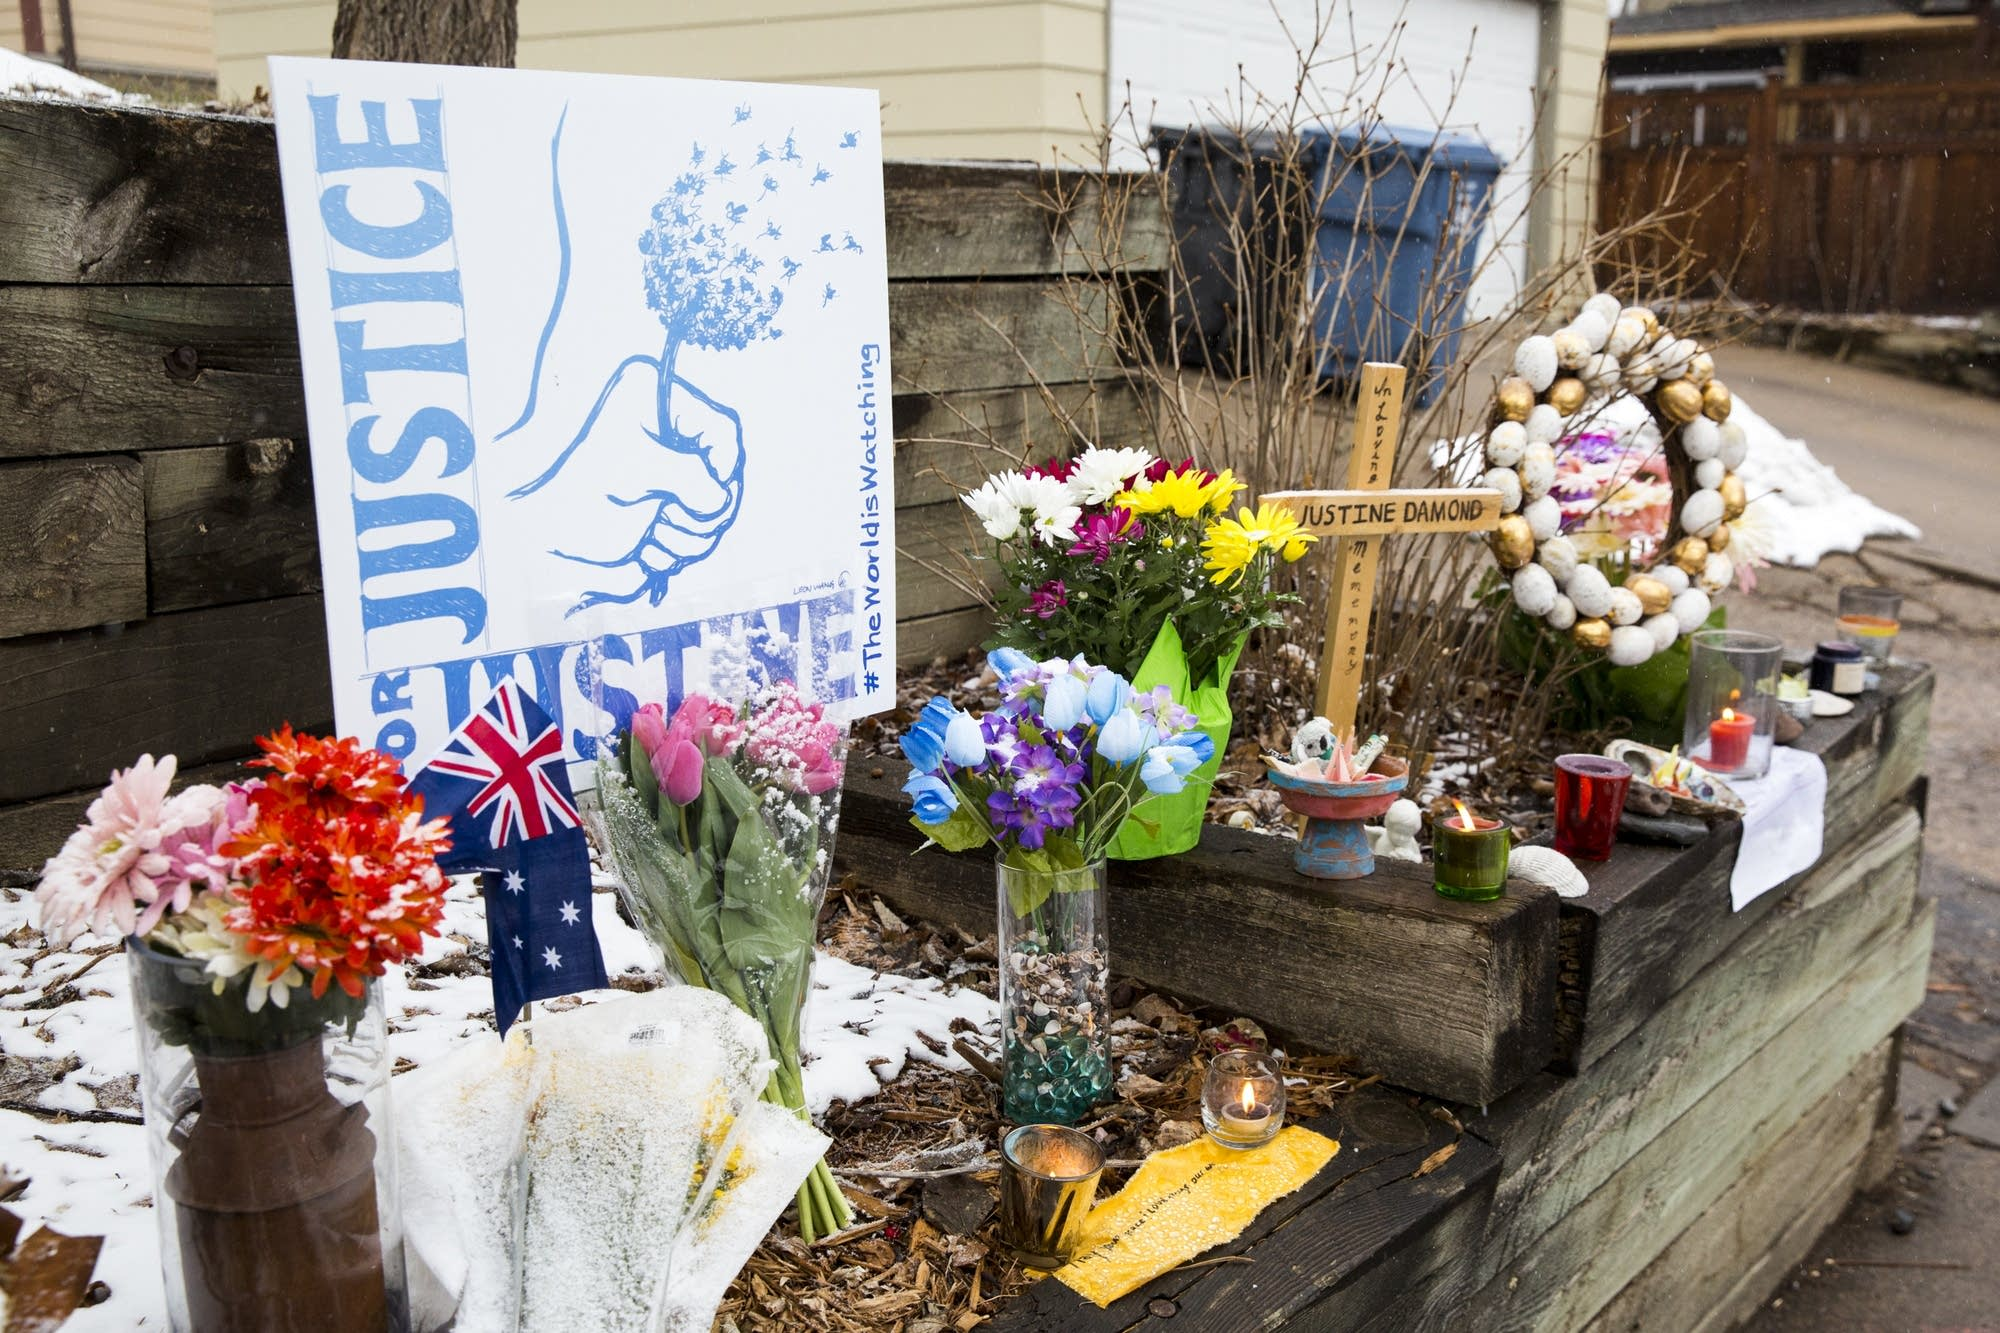 A fresh memorial for Justine Ruszczyk sits at the end of the alley